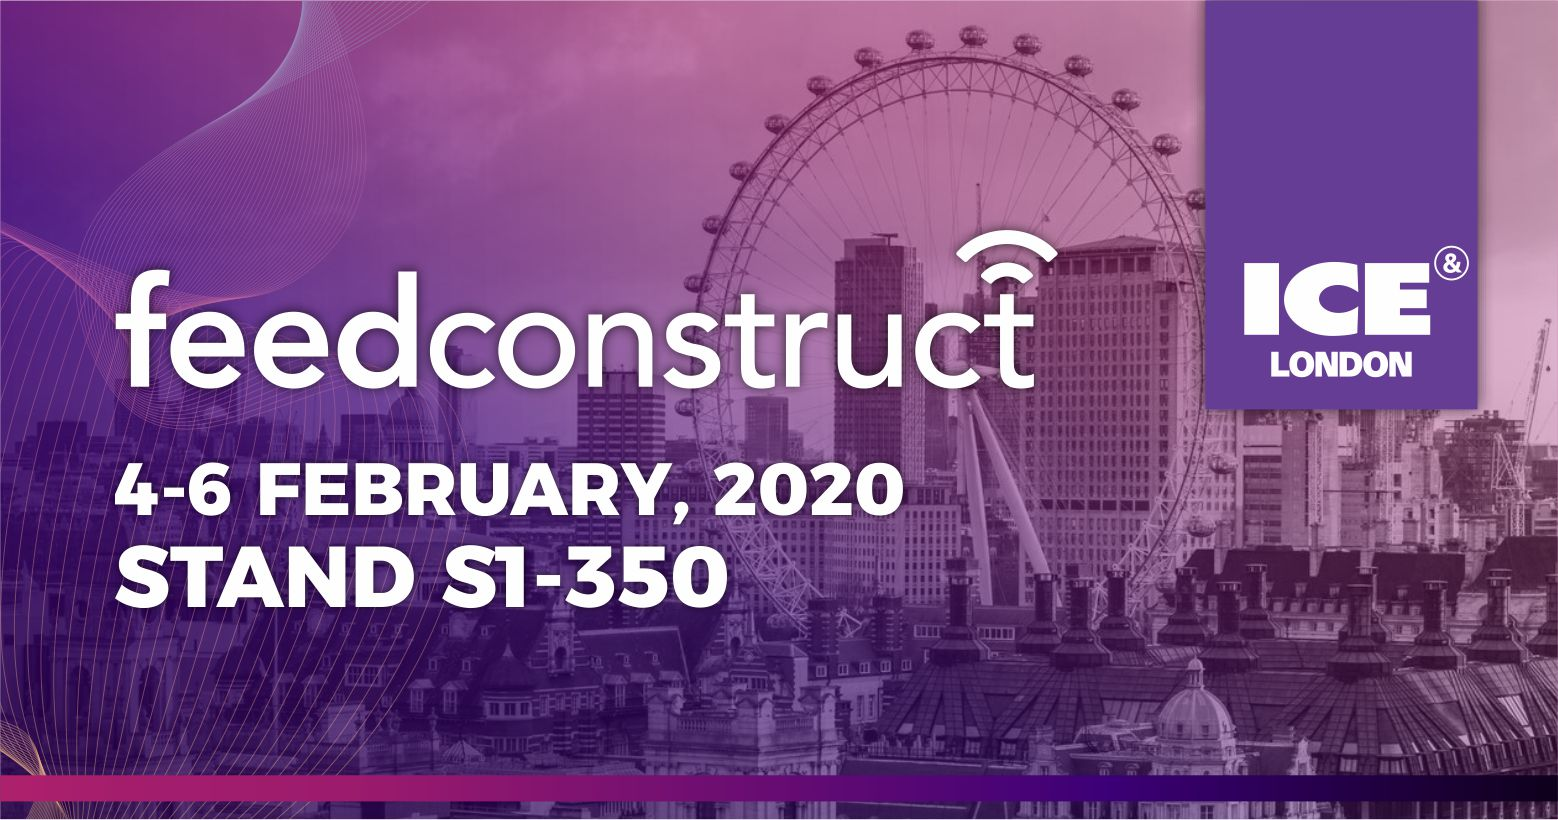 FeedConstruct Presents Sports Data from East and West at ICE 2020